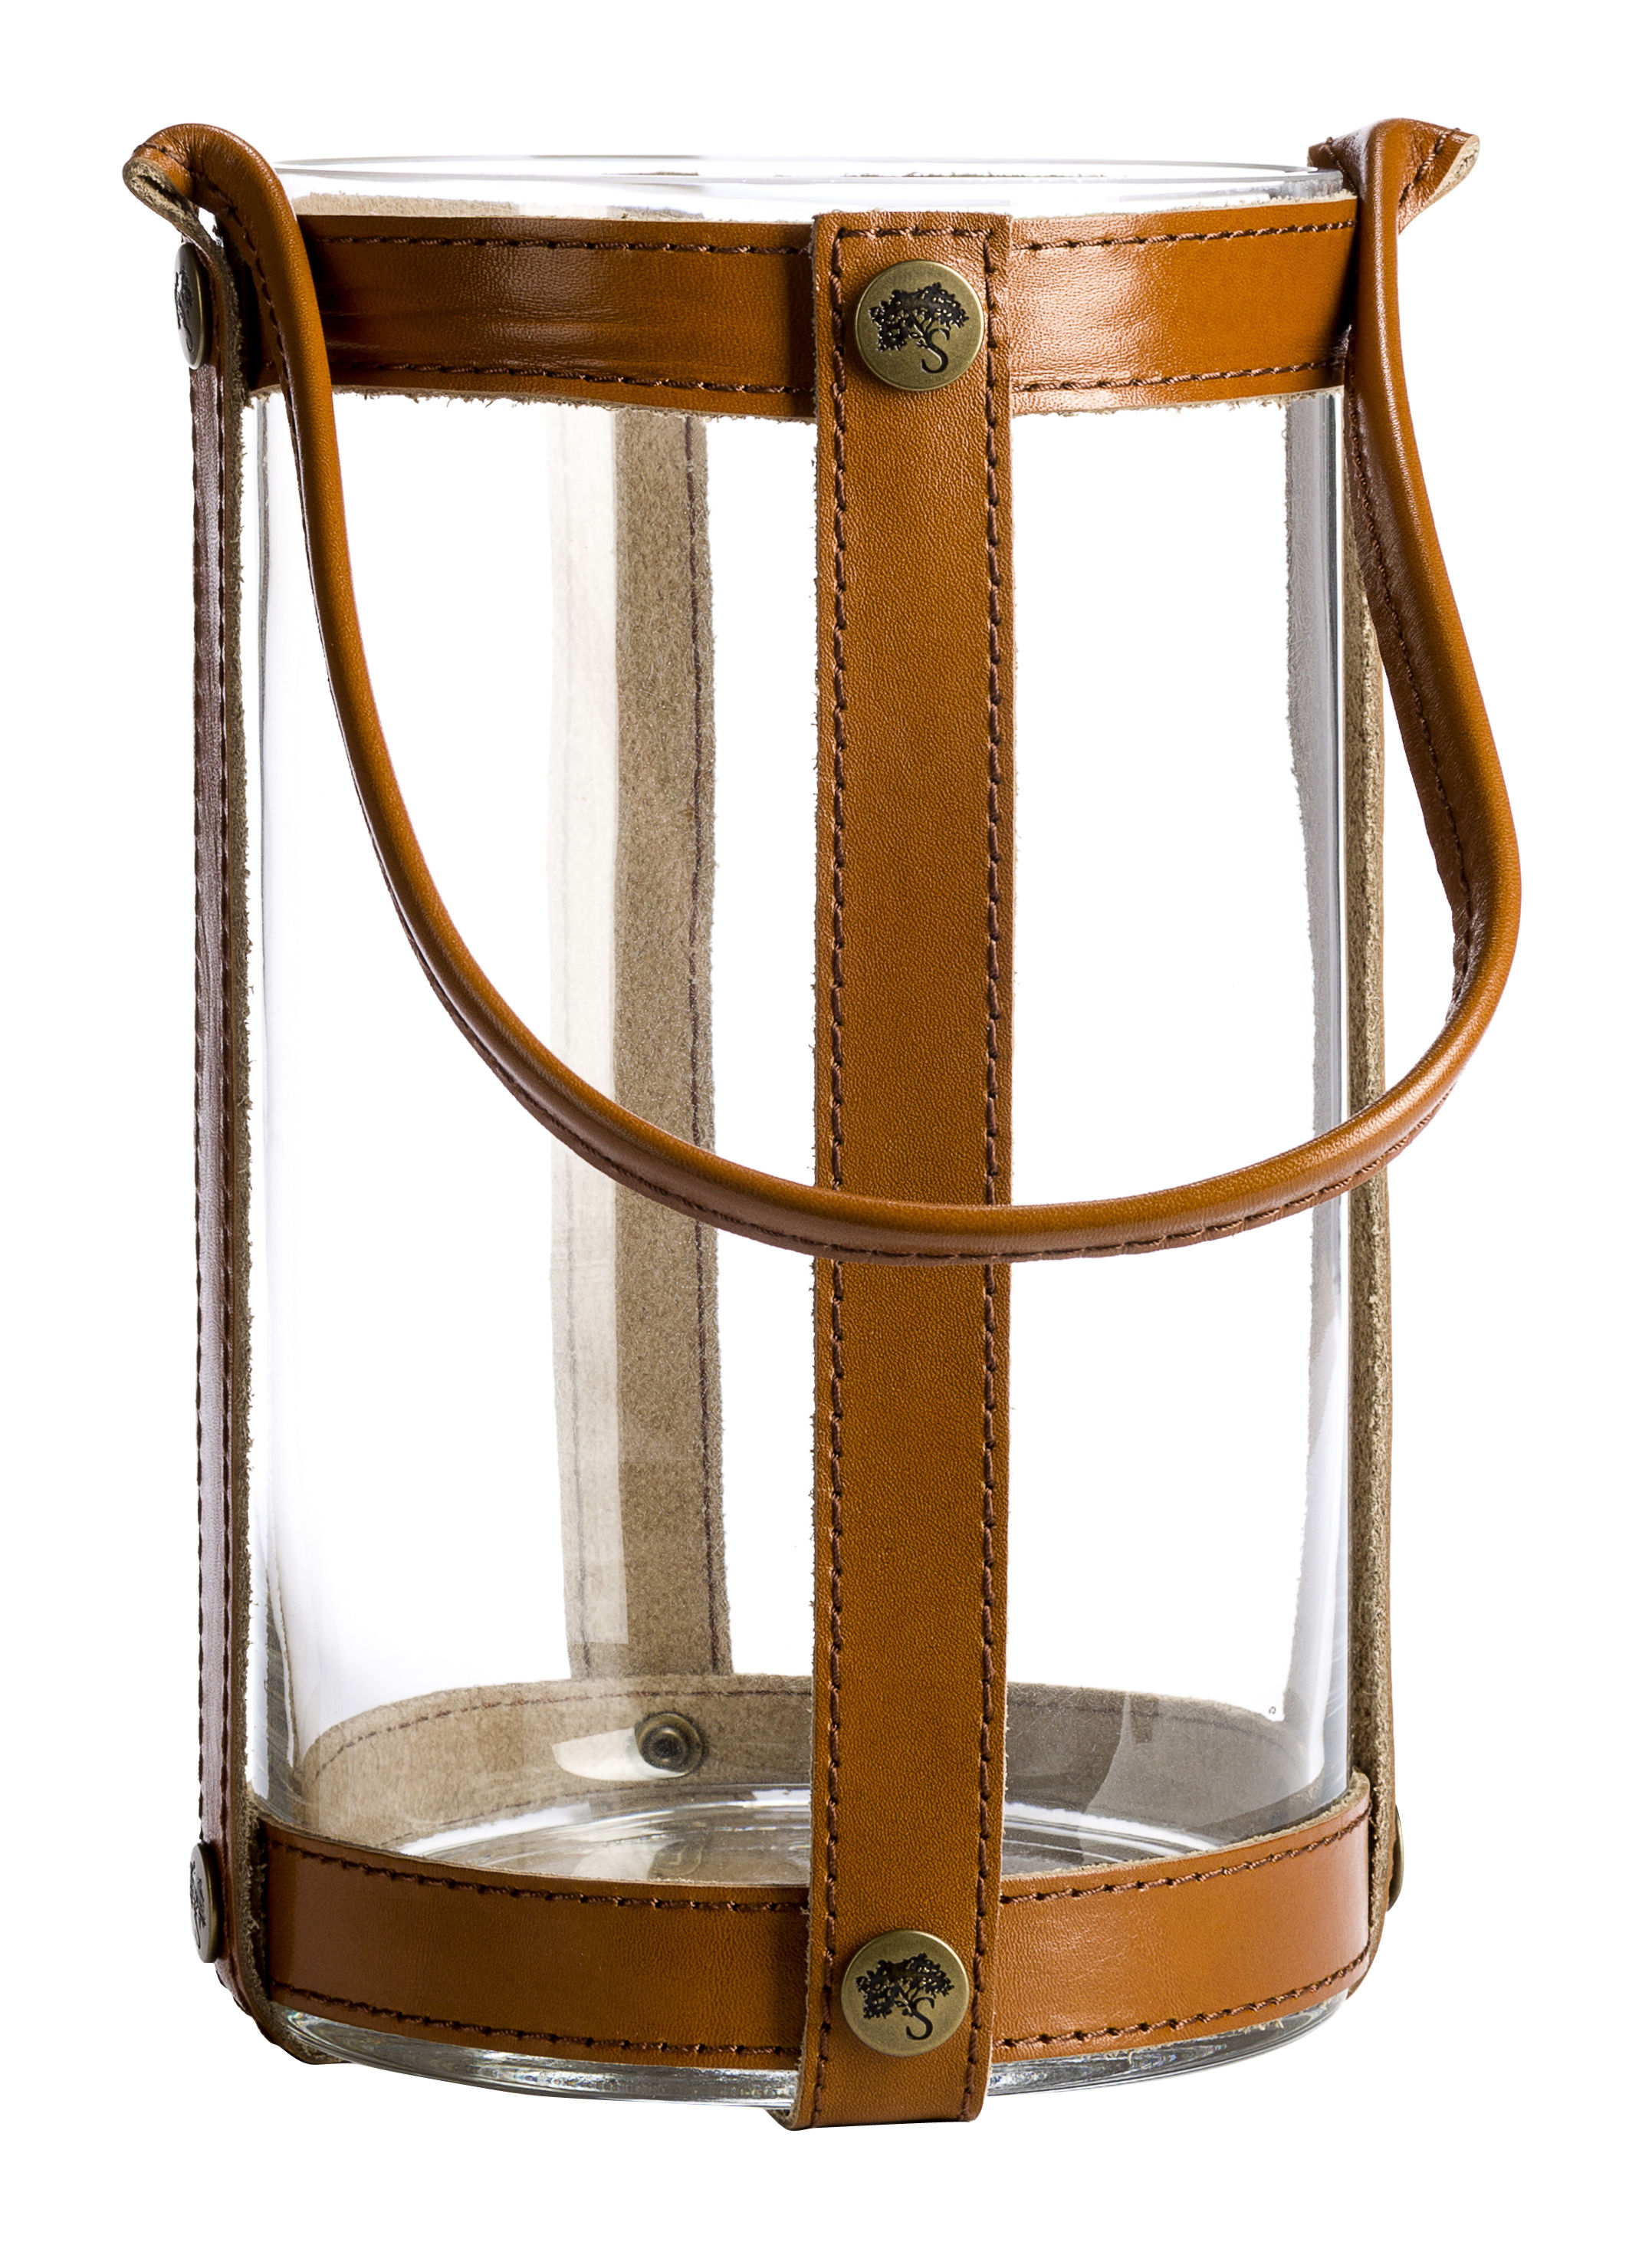 Decoration - Candles & Candle Holders - Marstrand Lantern - Ø15 x H25 cm - Leather by Skargaarden - Brown leather - Glass, Leather